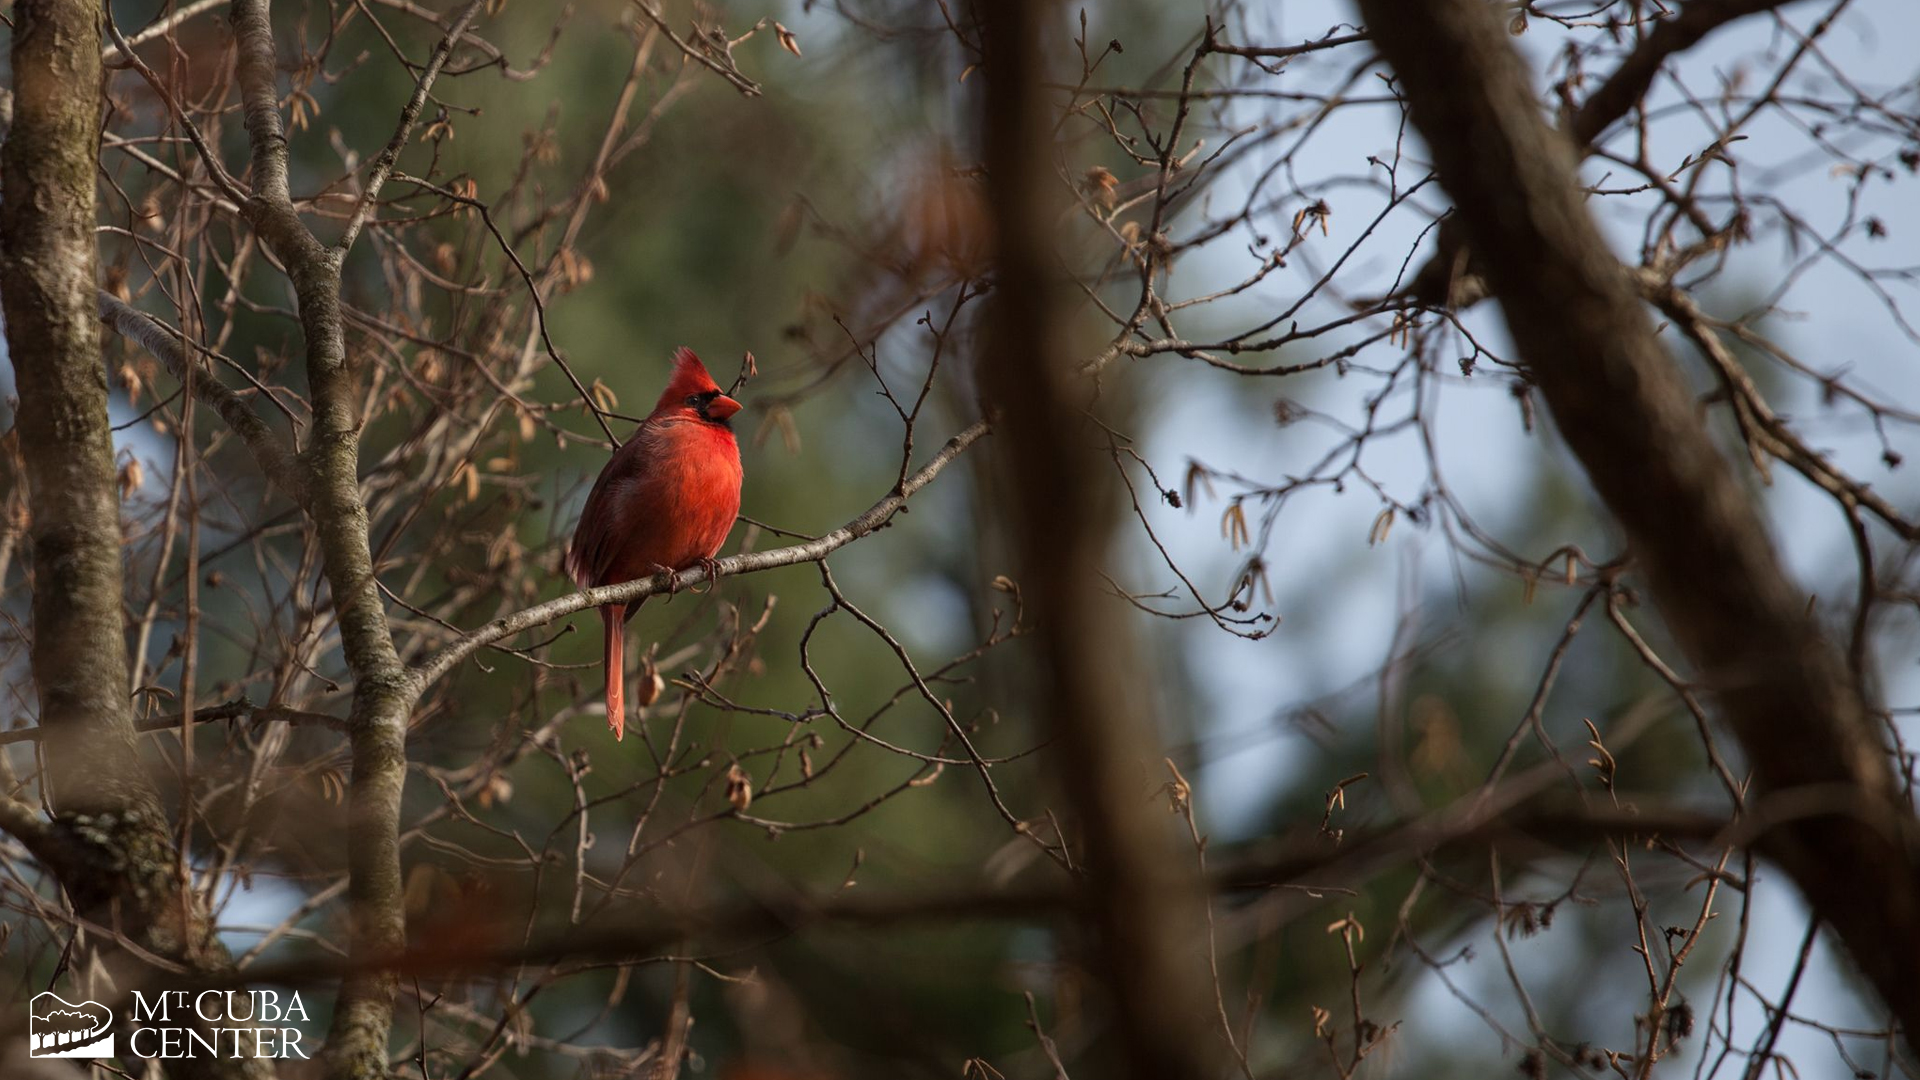 A cardinal perched on a tree in Mt. Cuba Center's gardens.